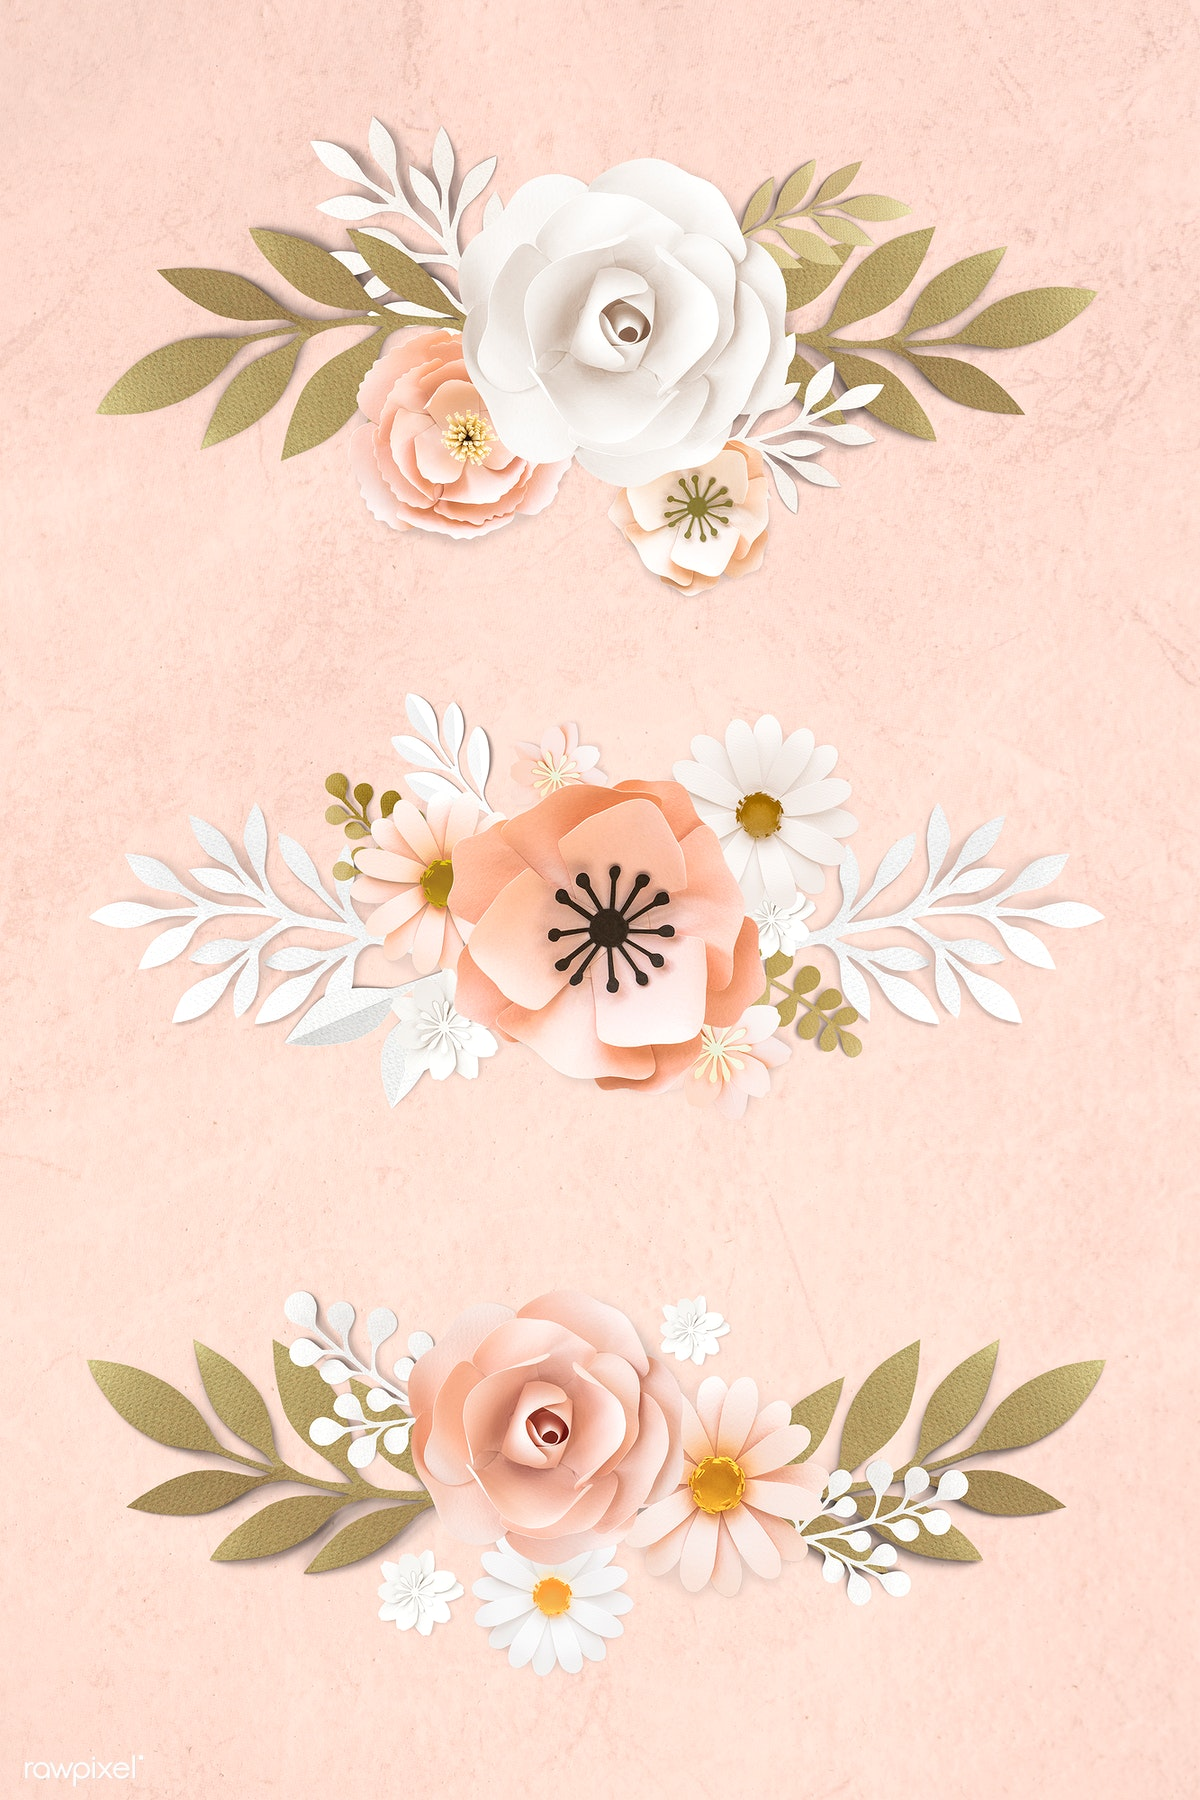 Download Premium Psd Of Pink And White Paper Craft Flower Banner